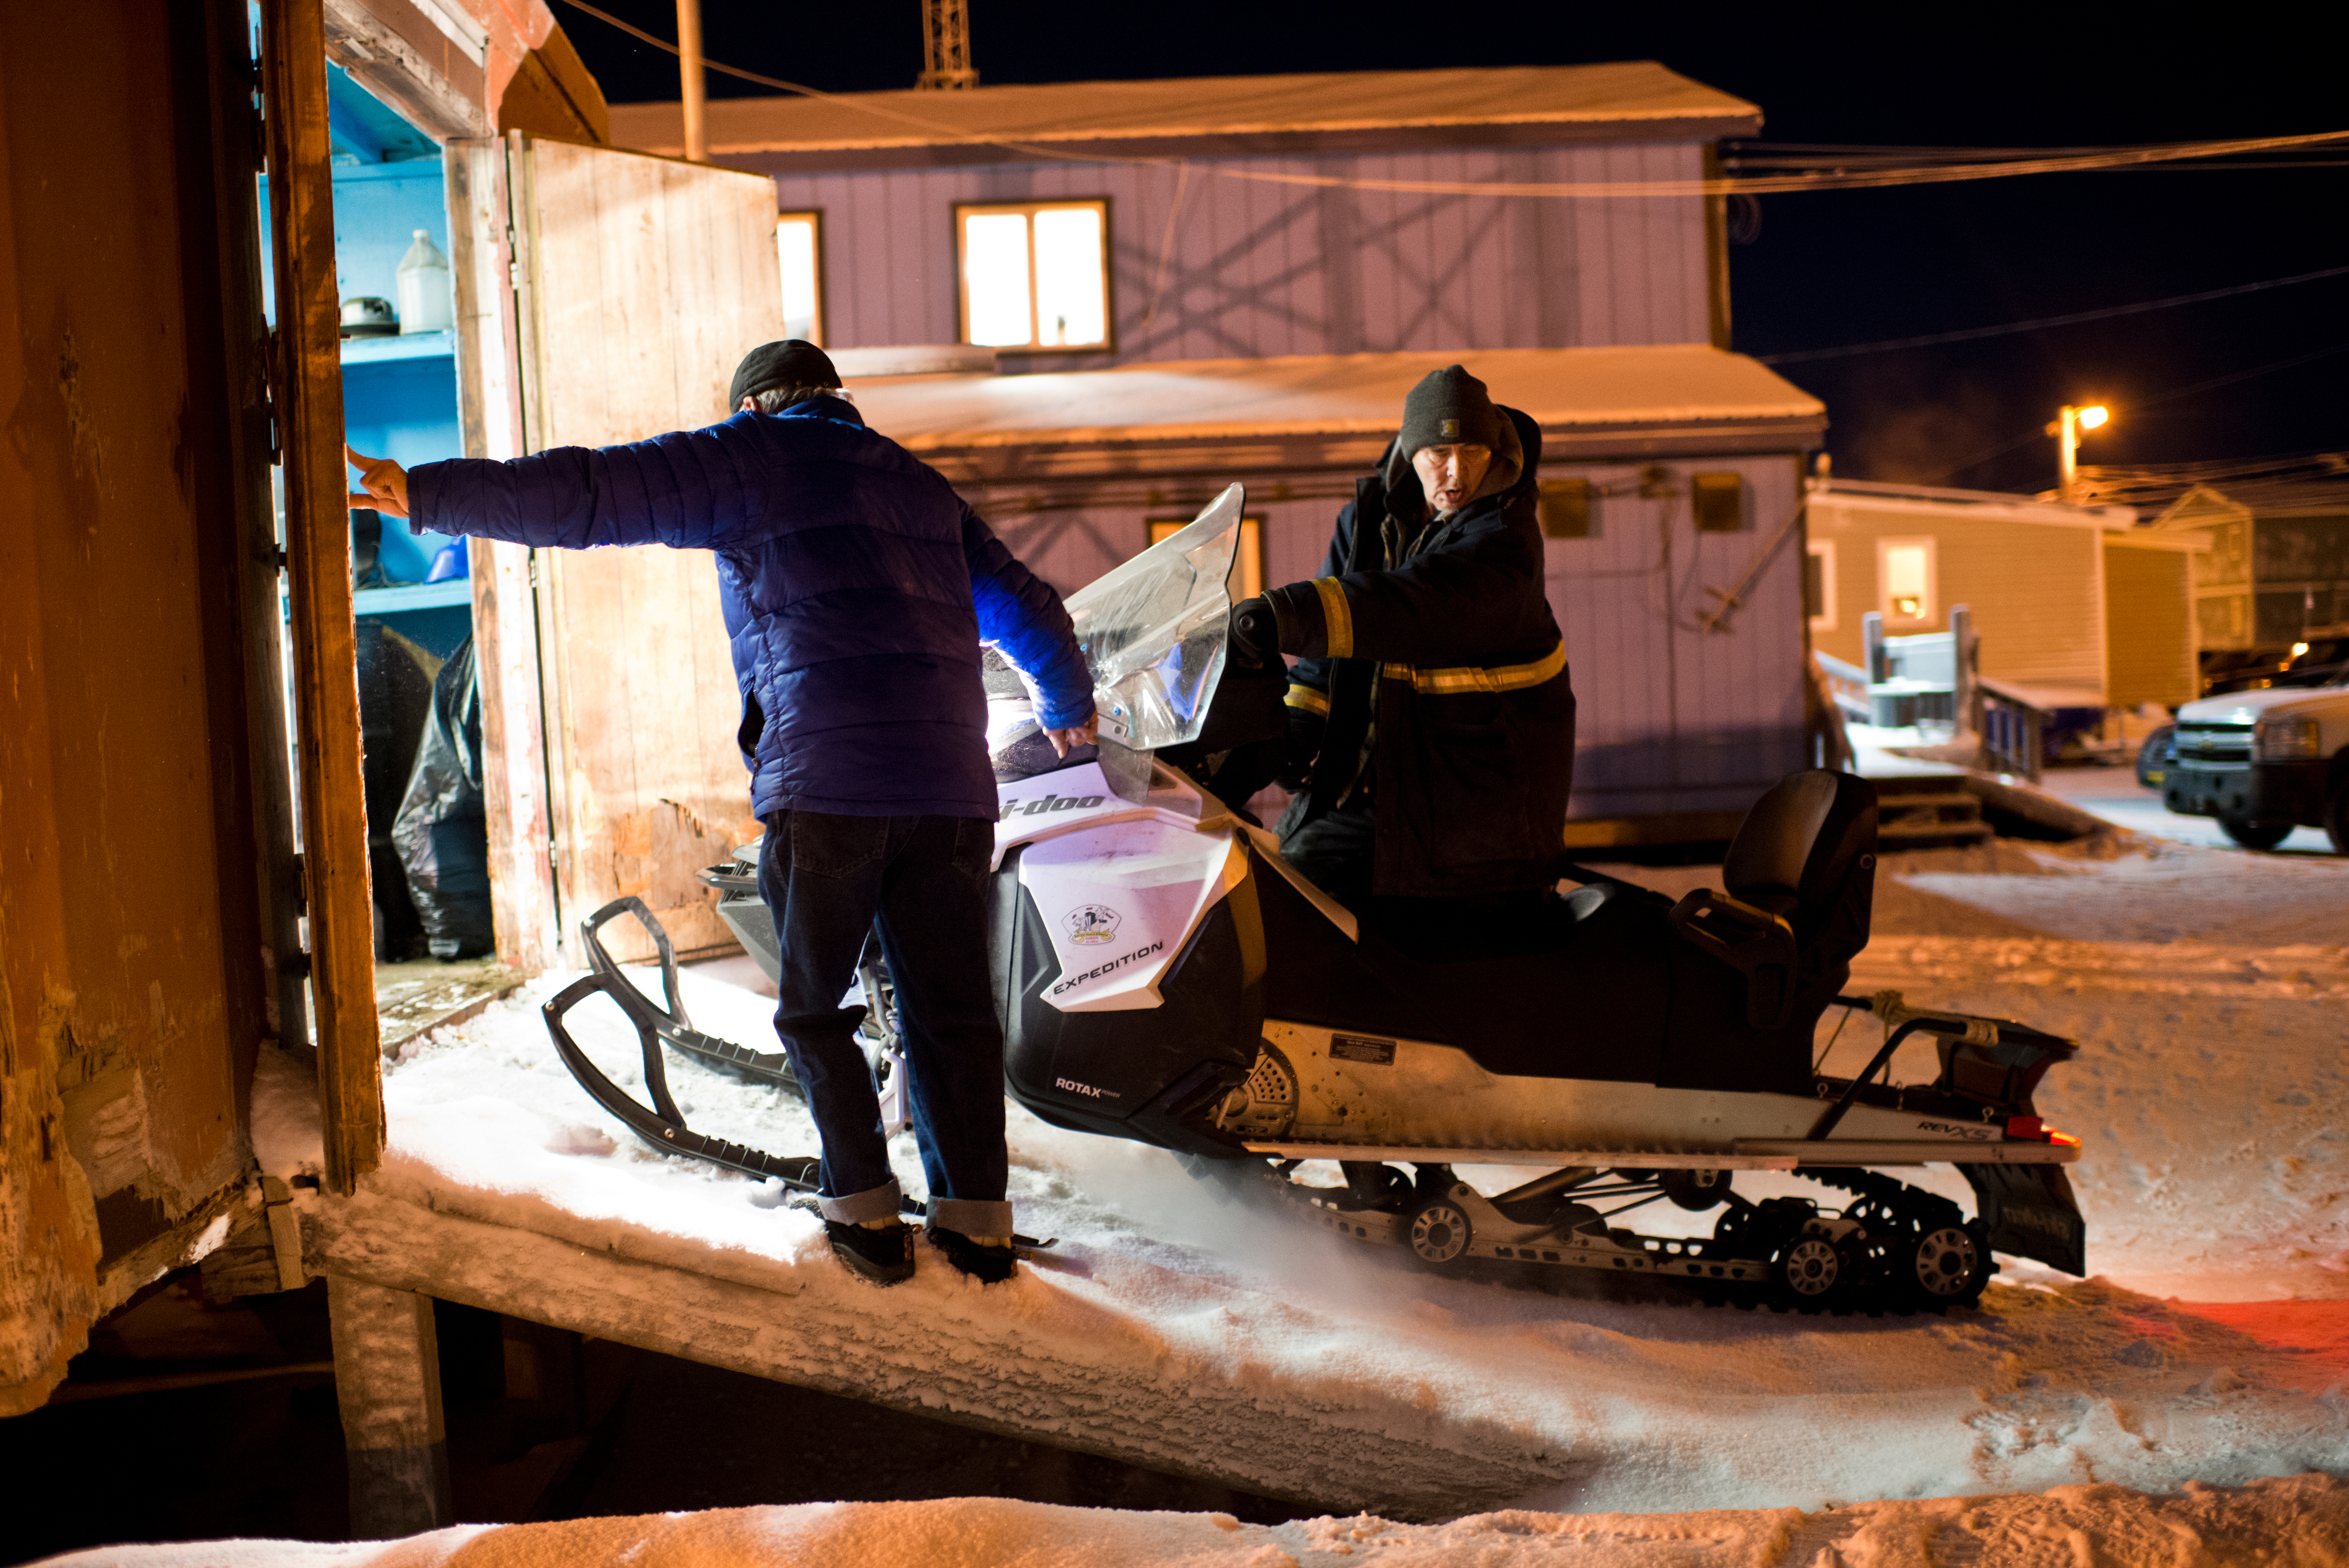 Patrick Brower departs the Barrow Searc and Rescue headquarters to assist a group of four people whose snow machines broke down while on a hunting trip. Johnny Adams holds the door at left. When someone is lost or stranded in the wild lands within 25 miles of Utqiagvik, volunteers from Barrow Search and Rescue often take they lead in retrieving them. The group also has helped map camps and cabins in the region, stake trails between village and provide emergency beacons for travelers. Photographed on Tuesday, December 13, 2016. (Marc Lester / Alaska Dispatch News)